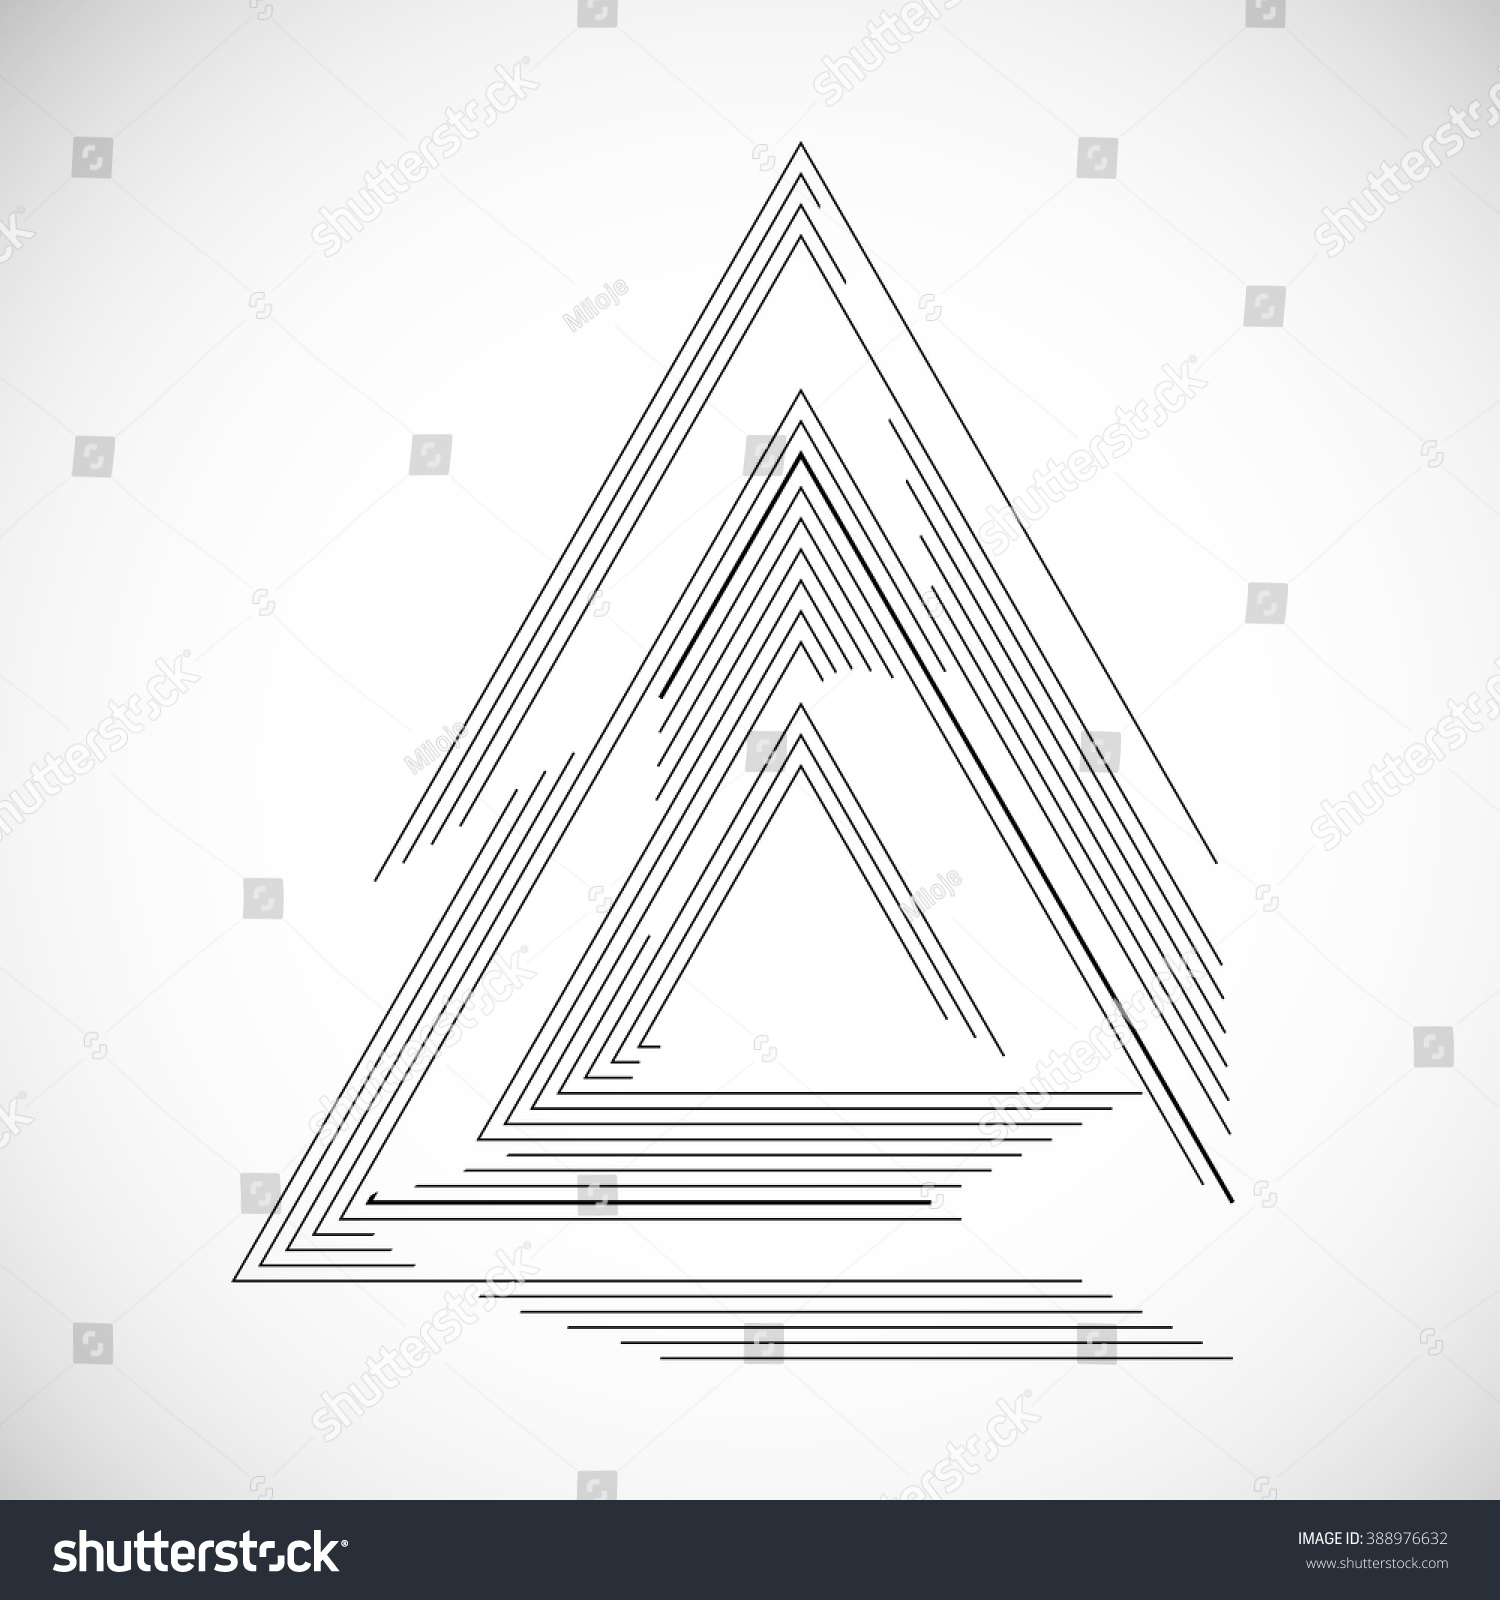 vector frame in triangle form